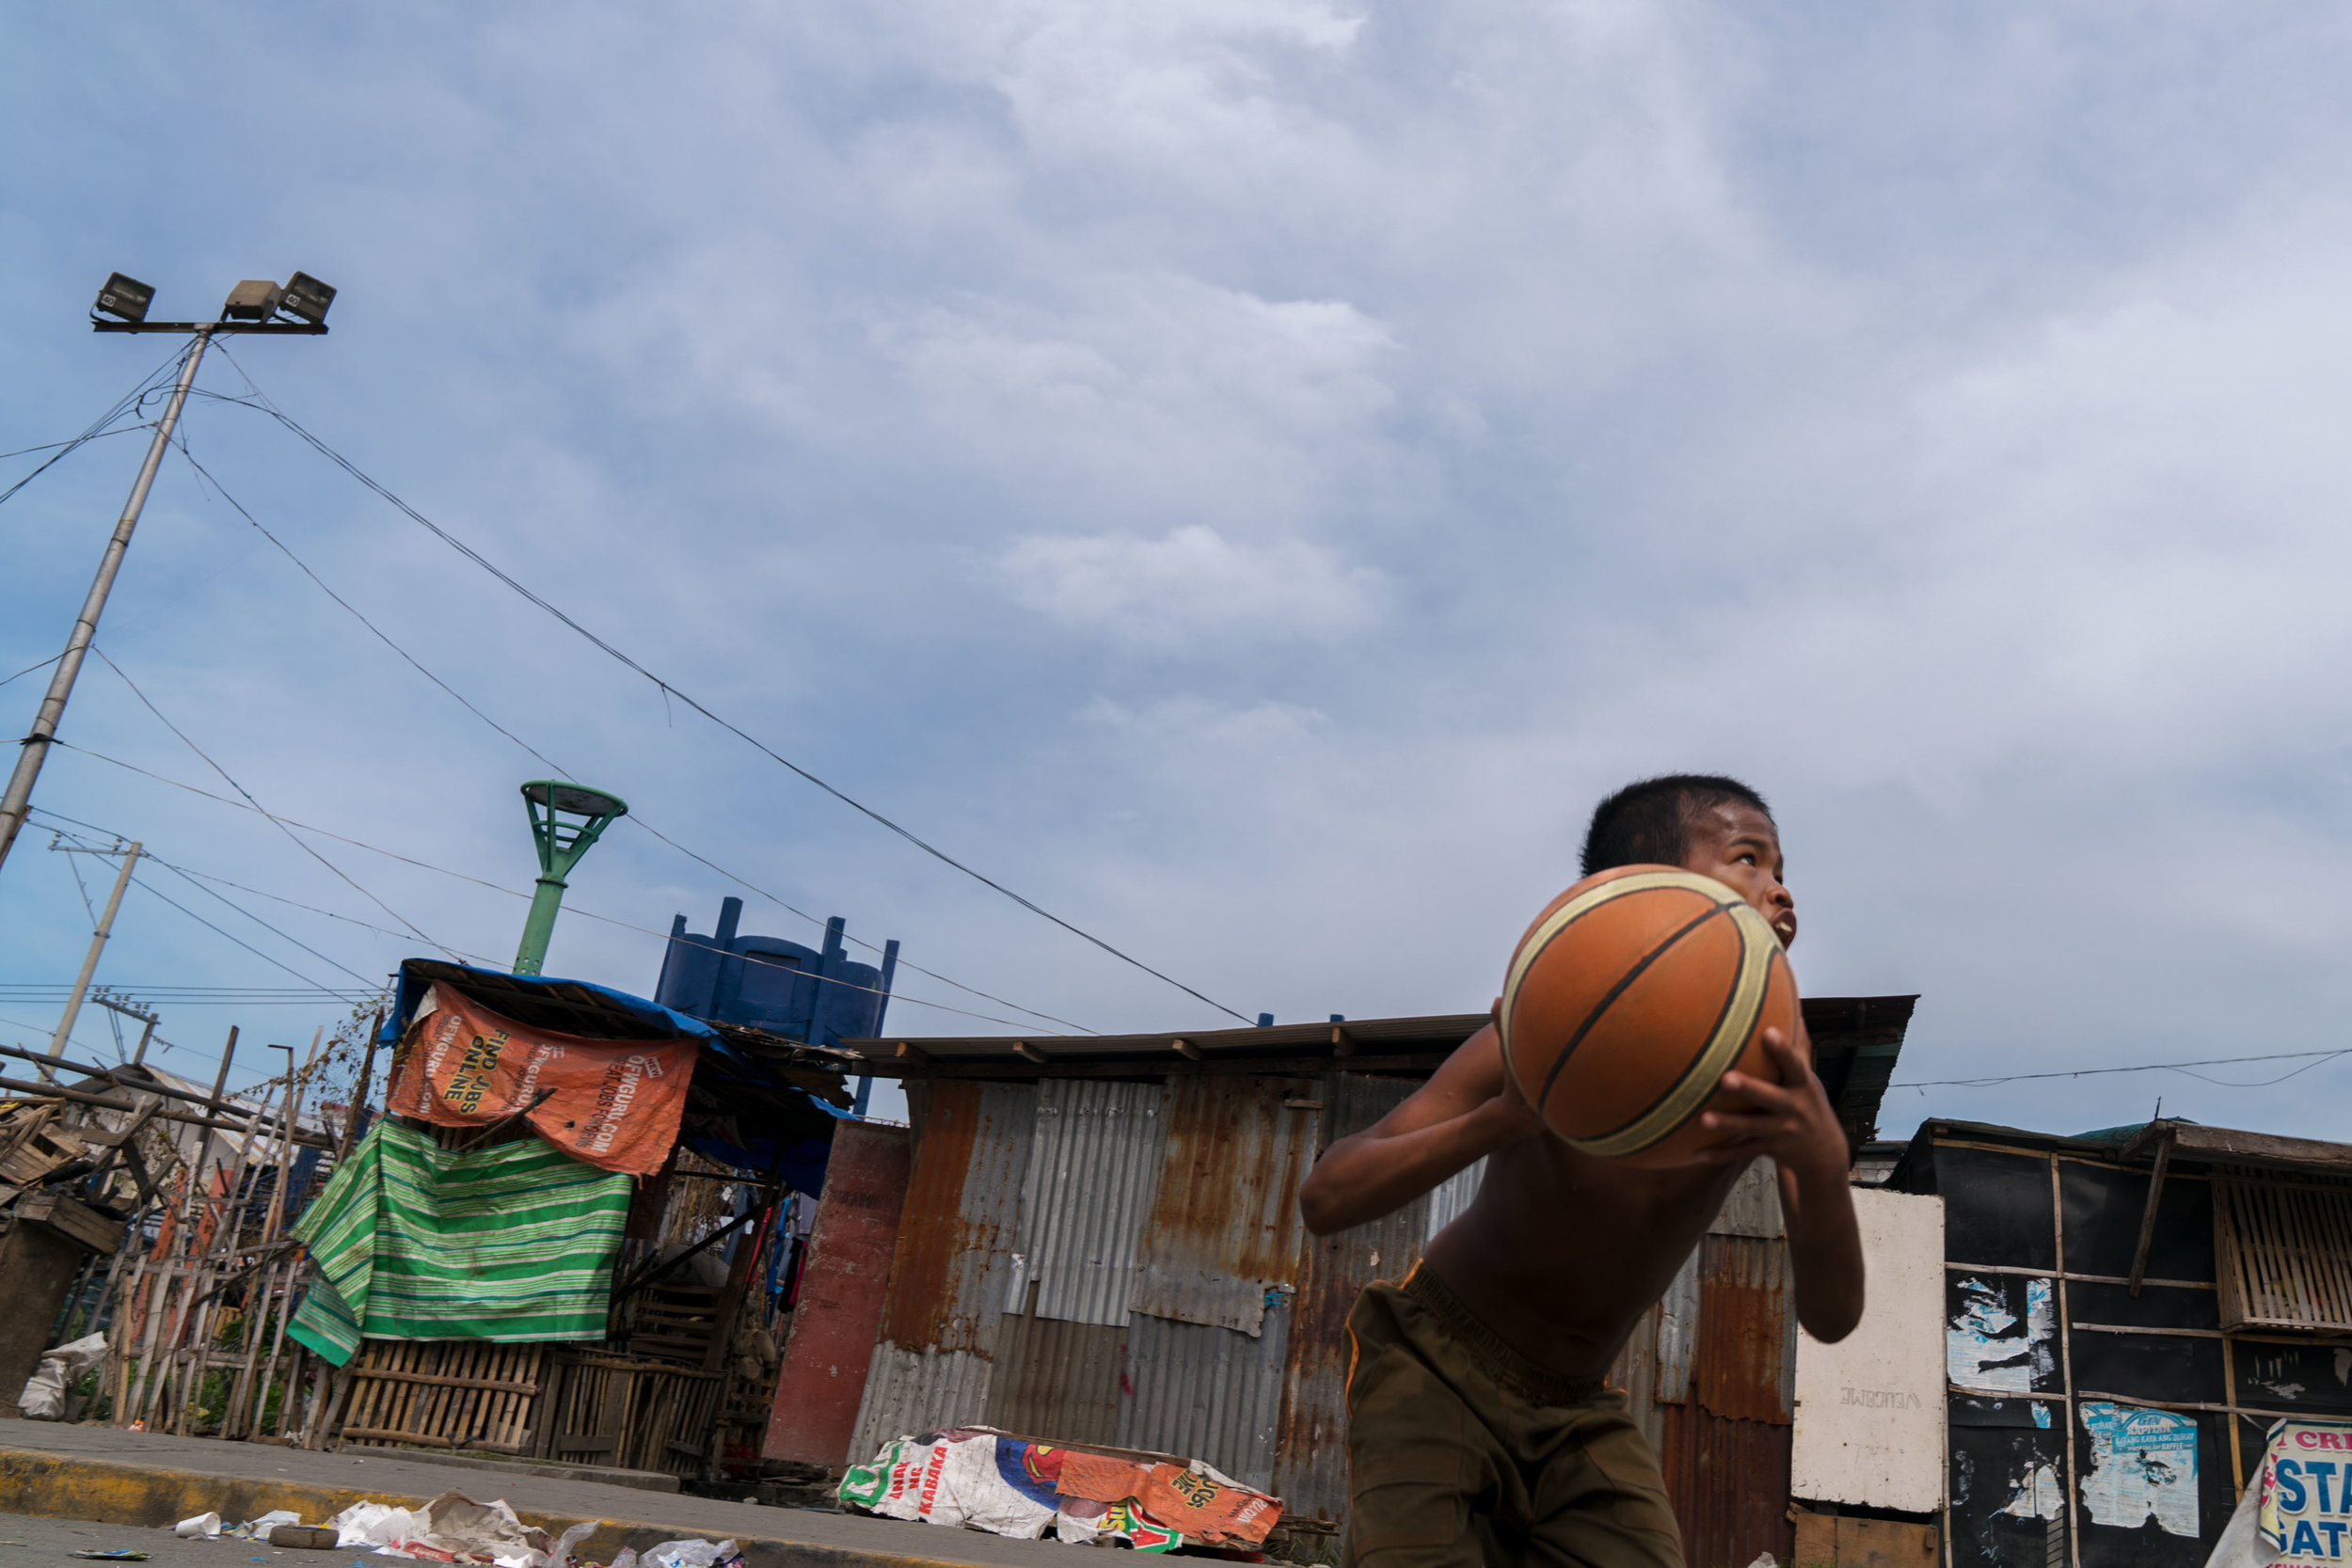 For many, basketball provides a diversion from the daily grind of poverty. If one excels in the sport, there is an outside chance to be drafted into a professional team, with the possibility of escape from their circumstances.